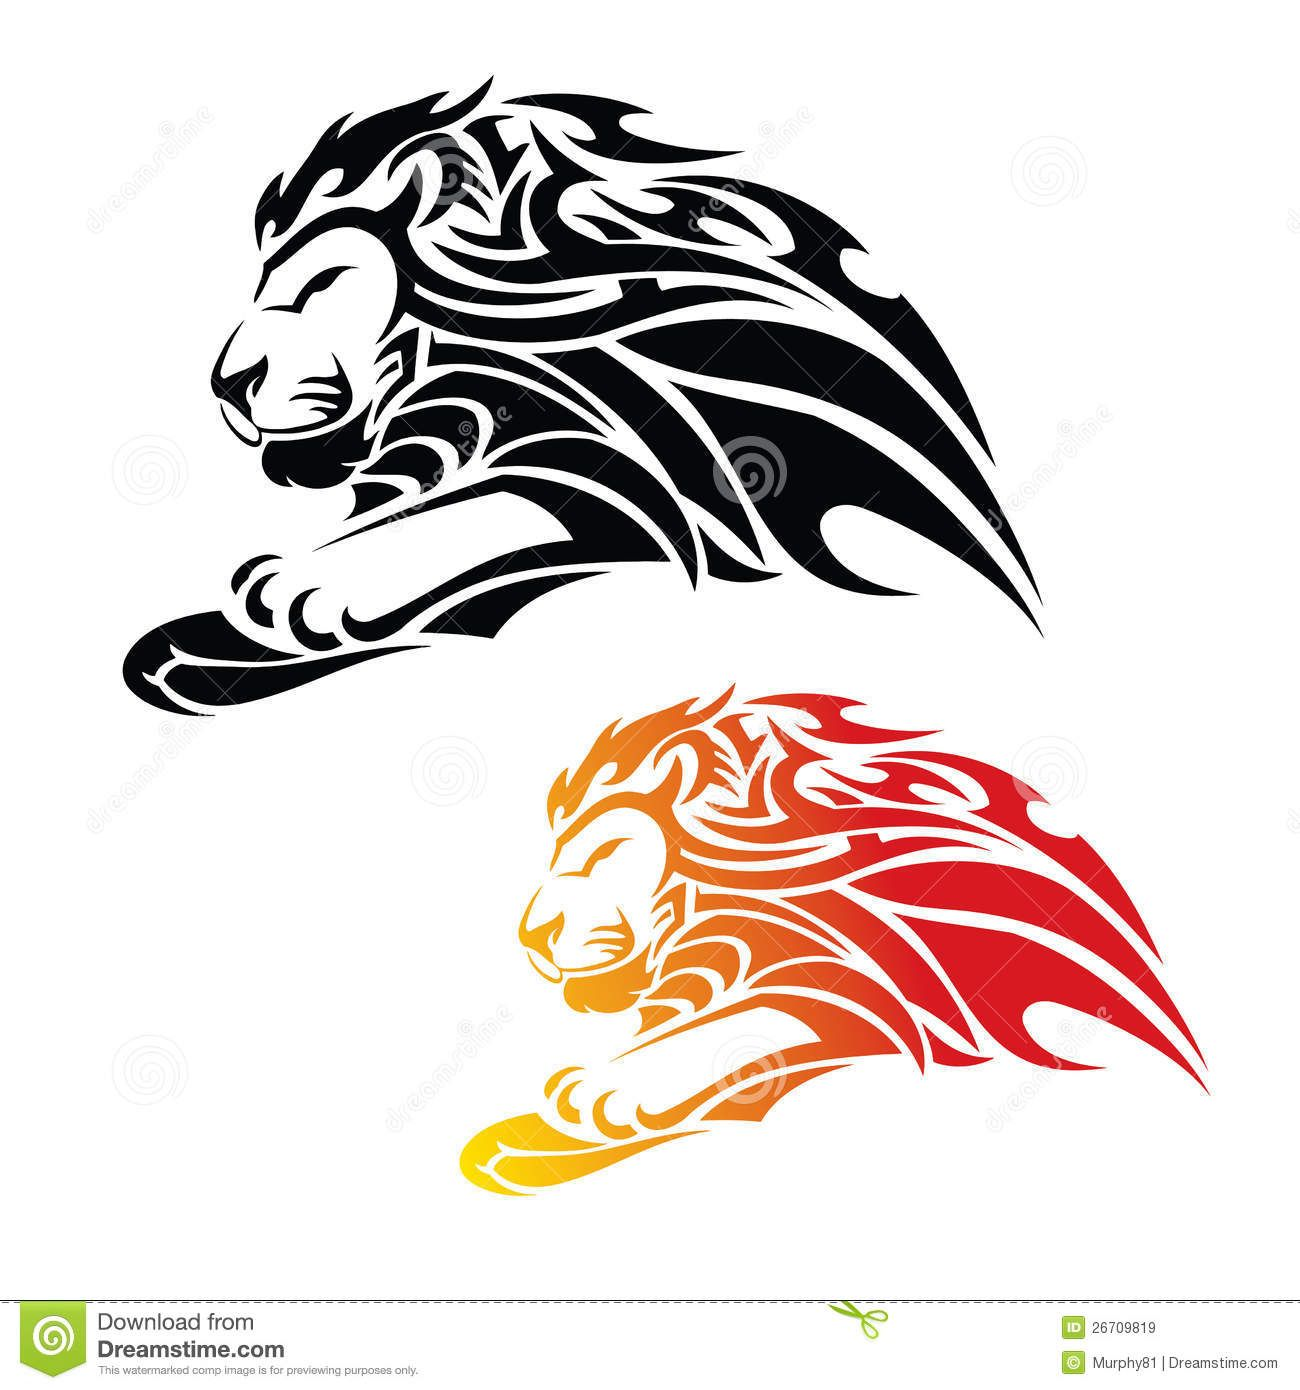 Tribal Lion In Jump Download From Over 62 Million High Quality Stock Photos Images Vectors Sign Up For Free Tribal Lion Lion Tattoo Design Tribal Tattoos